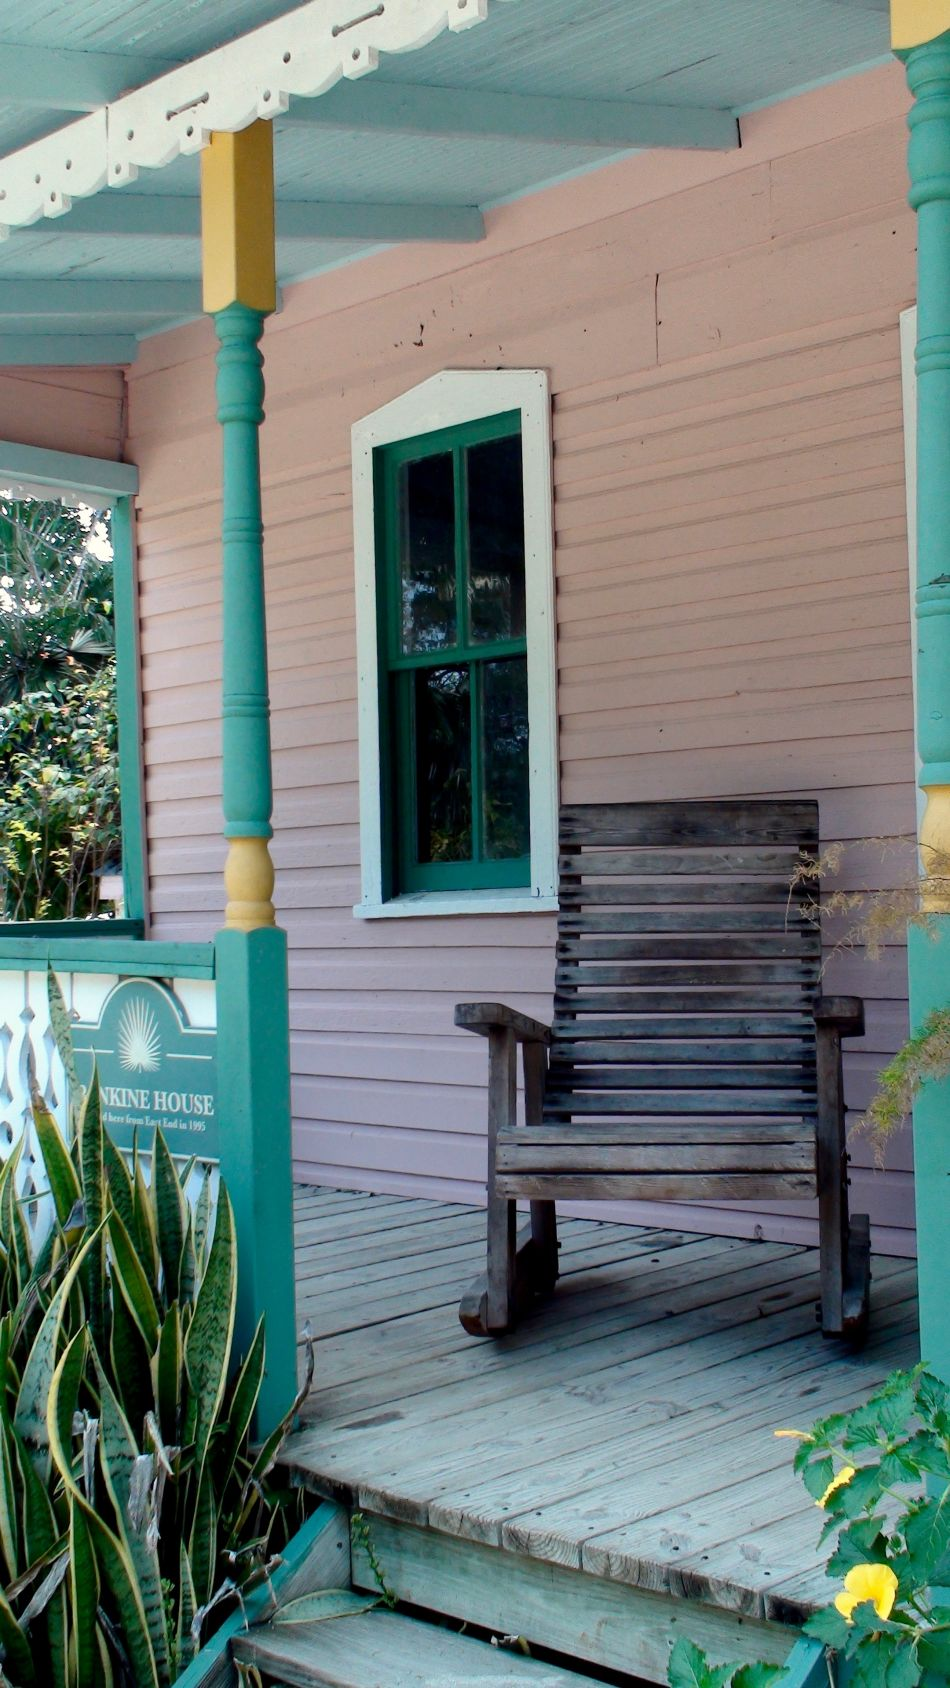 Cayman Cottage at the Botanic Park